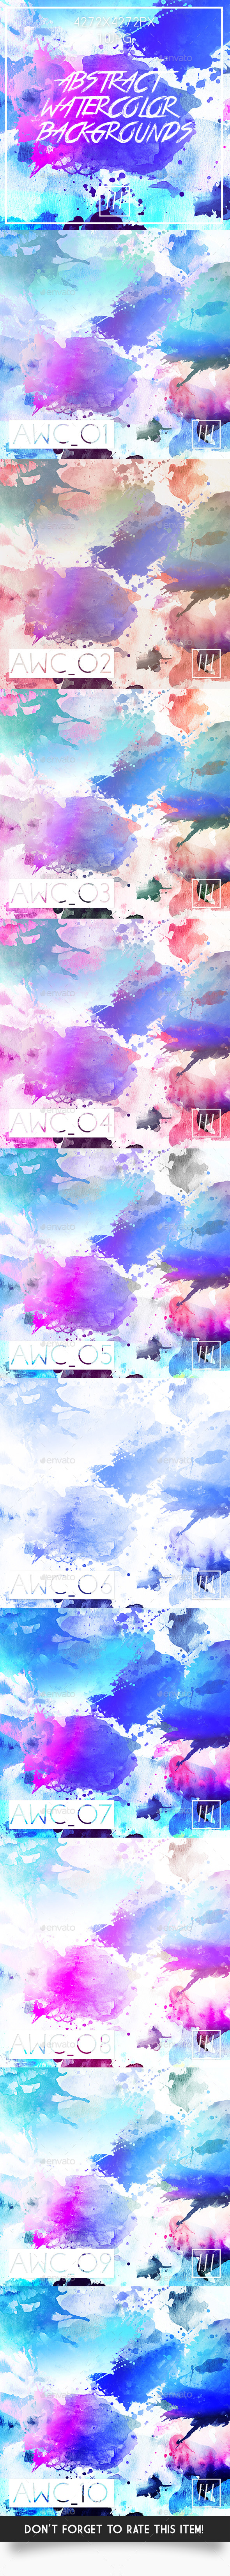 Abstract Watercolor Backgrounds - Abstract Backgrounds